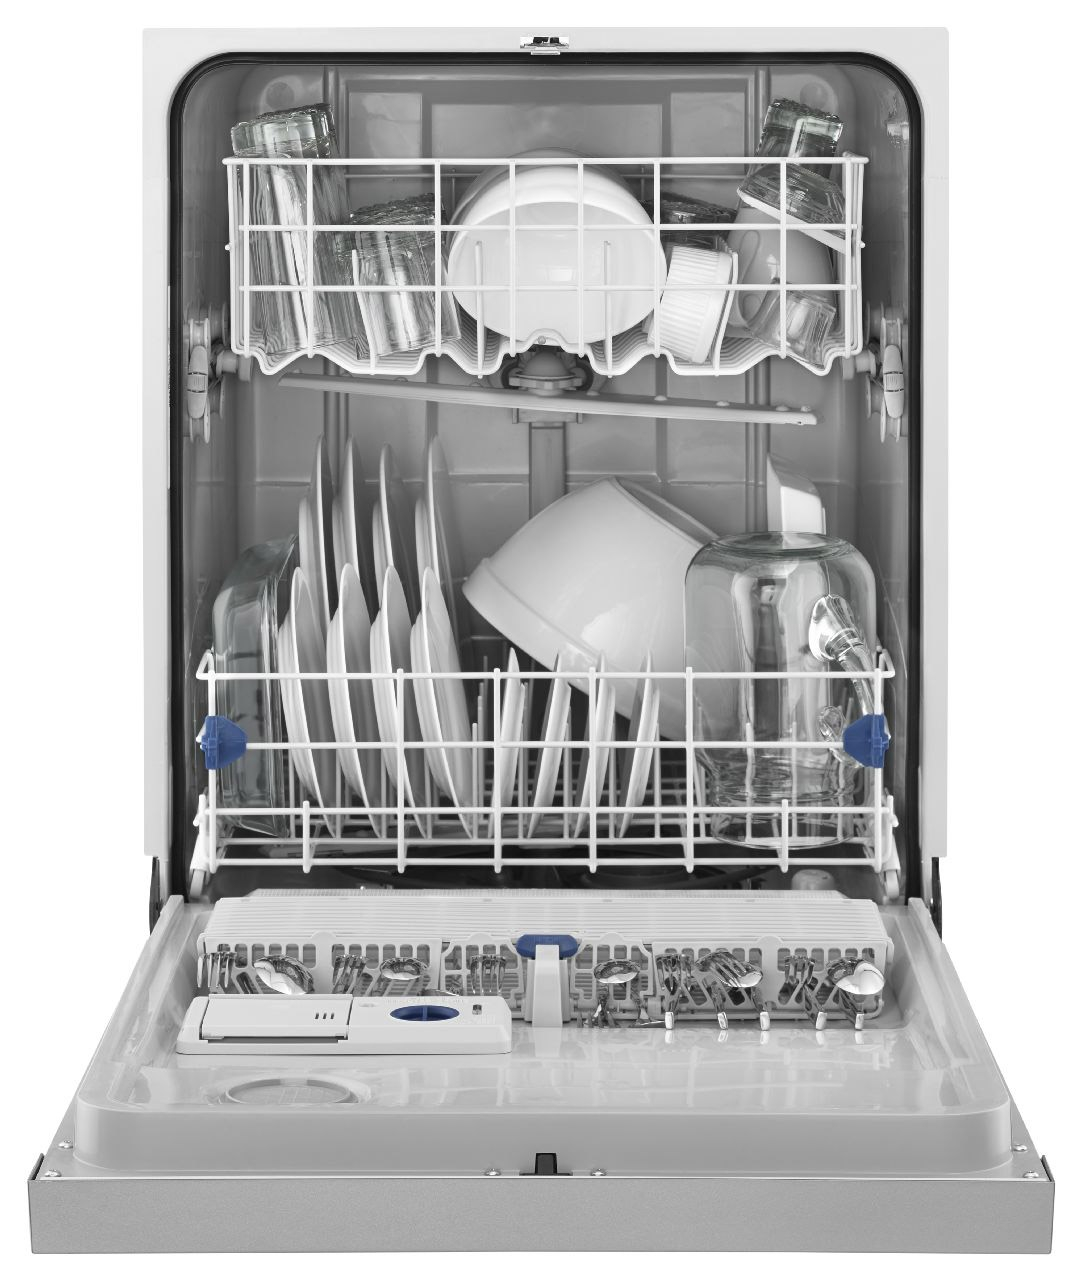 Whirlpool White Built-In Dishwasher